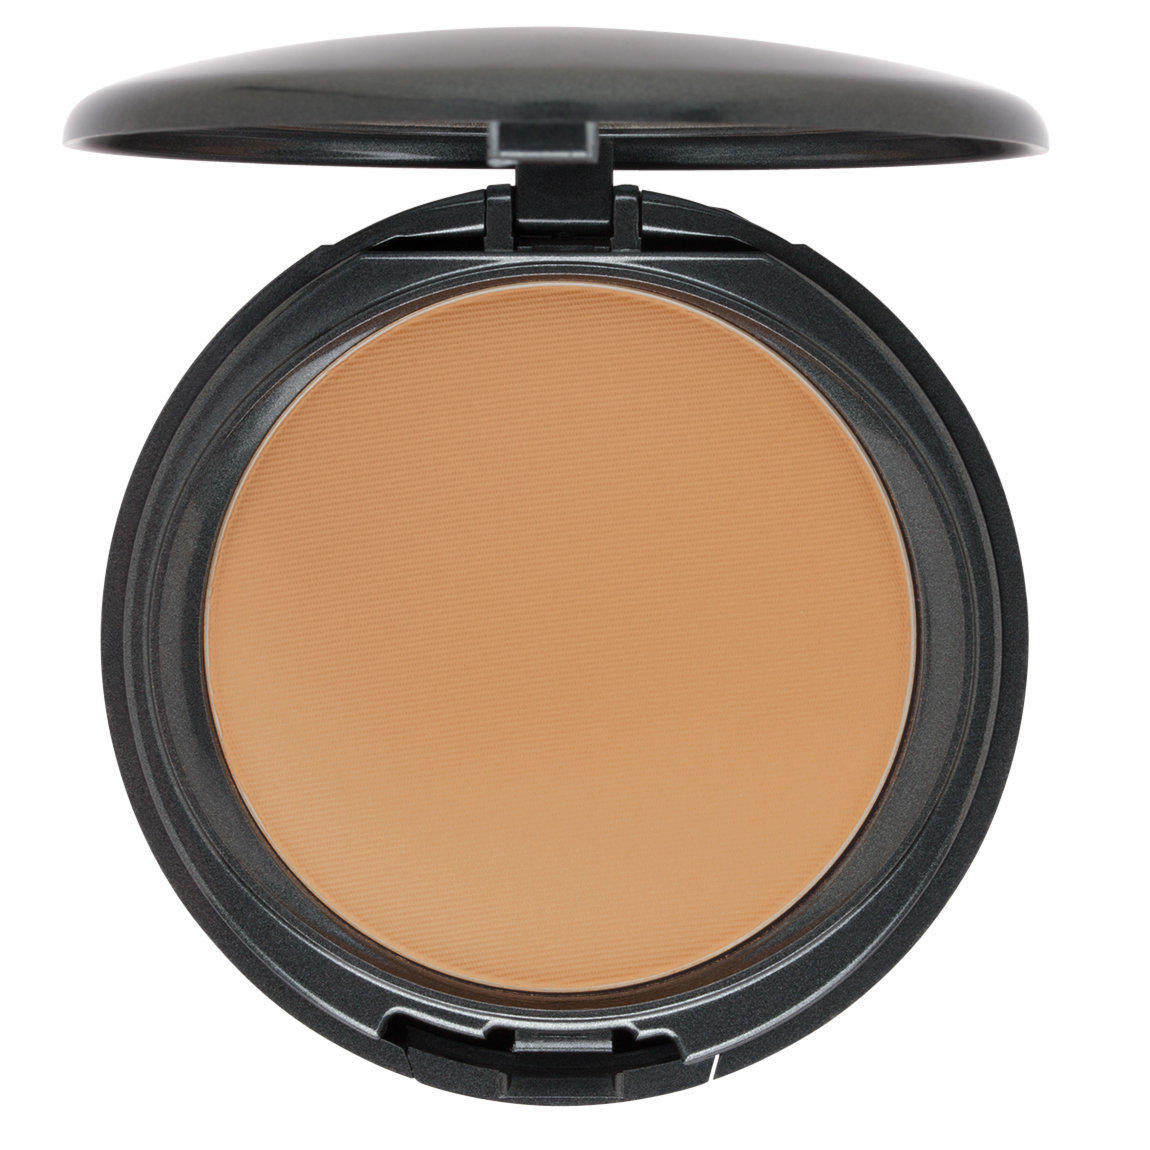 Cover FX Pressed Mineral Foundation G+60